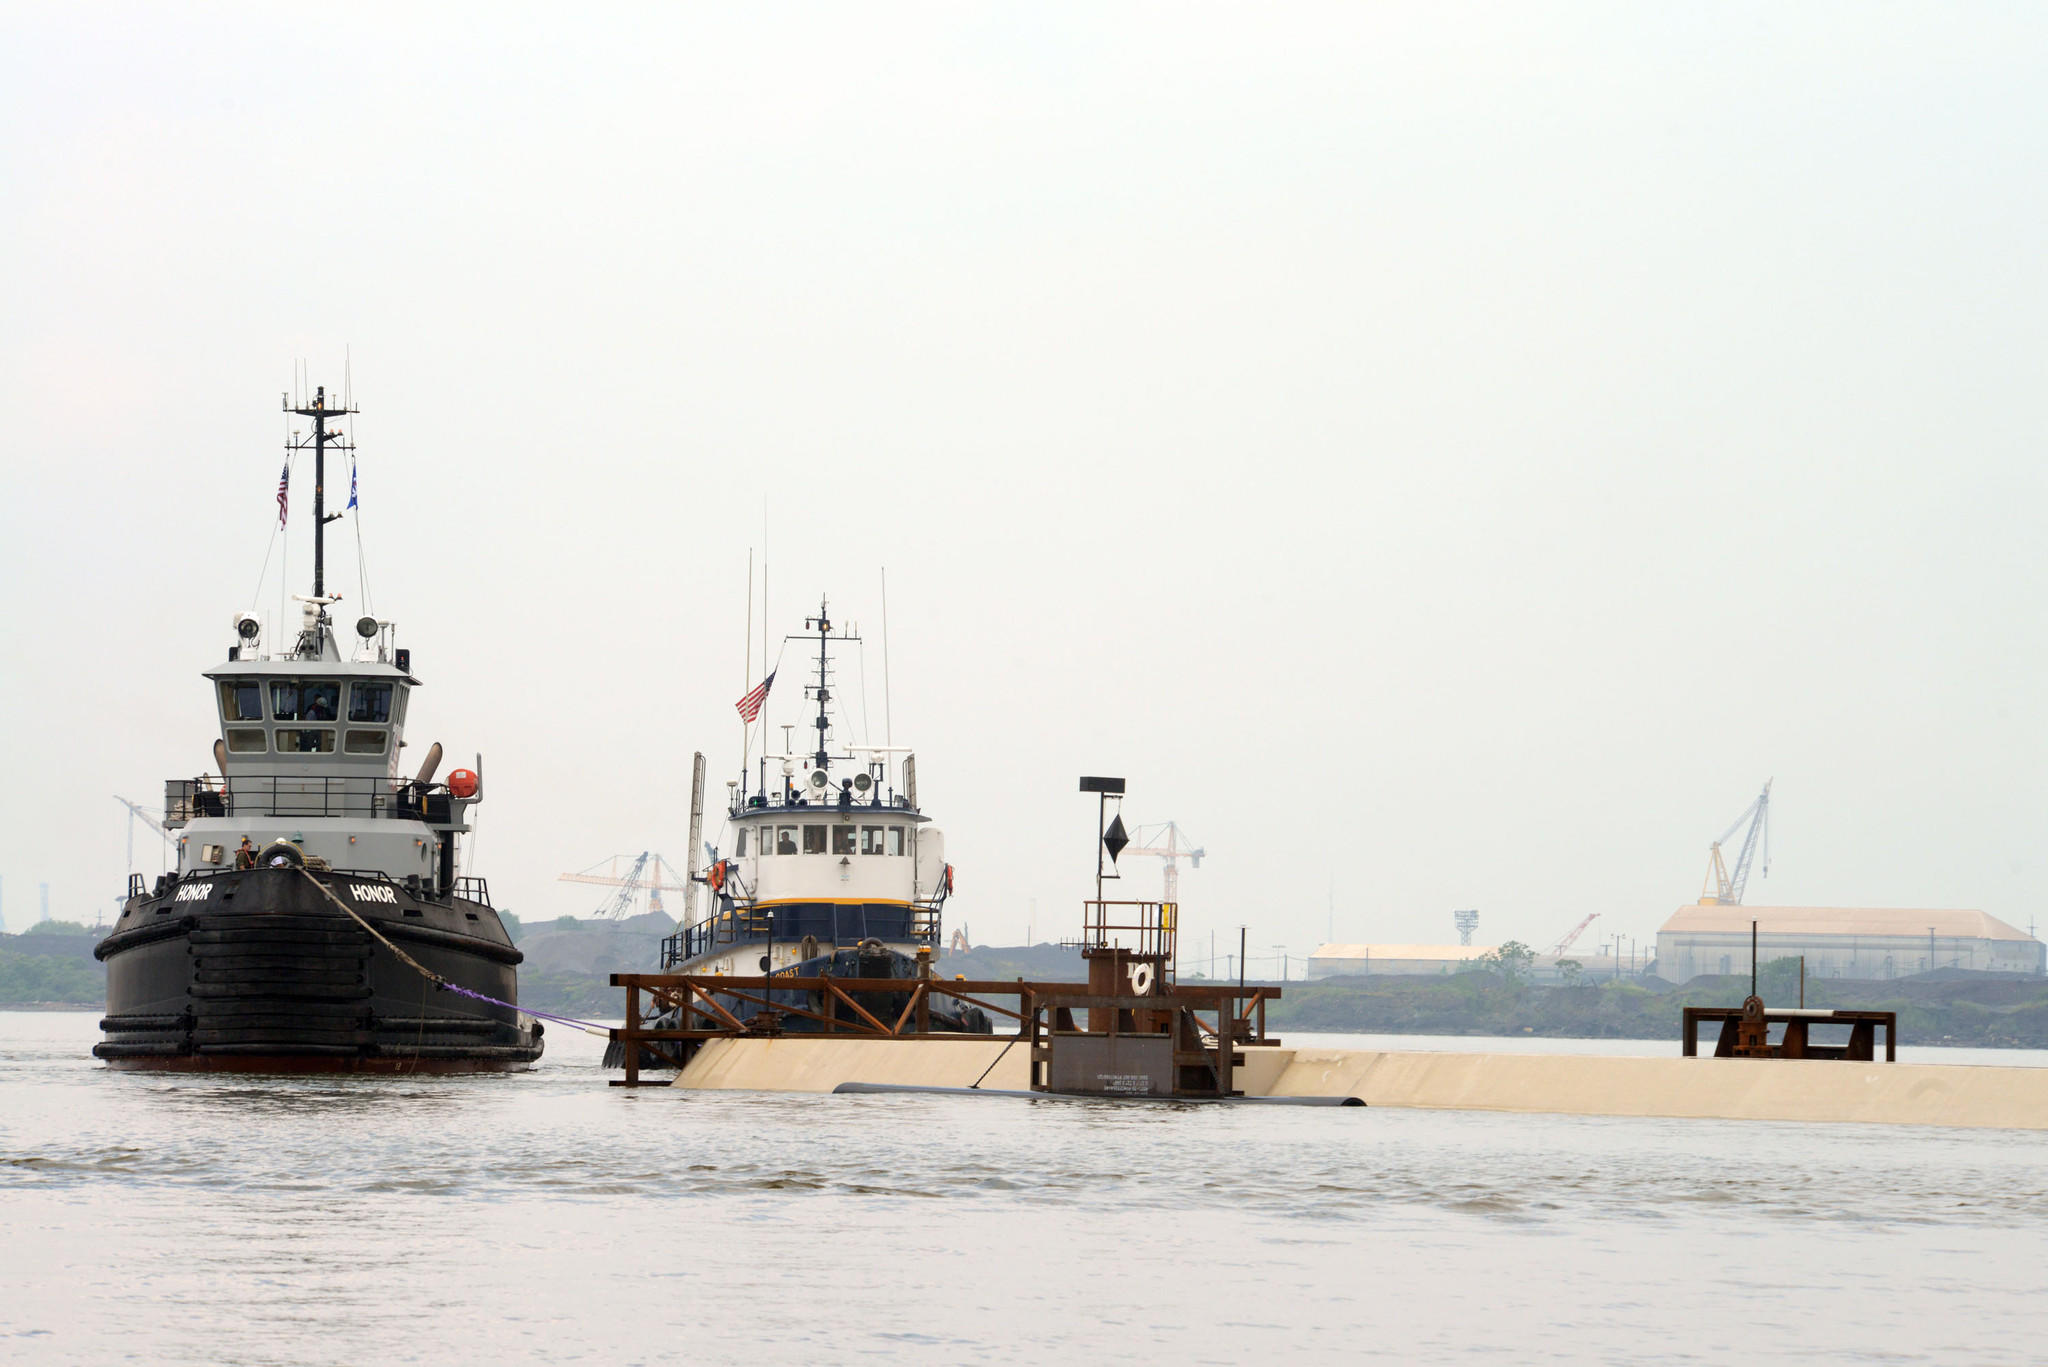 The tugboat Honor assists in the towing of a section of the Midtown Tunnel that connects Portsmouth and Norfolk, Va., Tuesday, June 10, 2014, near Sparrows Point, Maryland. Crews aboard two 25-foot Response Boat - Smalls from Coast Guard Station Curtis Bay, Maryland escorted the tugs to the Bay Bridge as the tugs towed the section down the Chesapeake Bay to the Portsmouth Marine Terminal, where it will await placement in the Elizabeth River this fall. ORG XMIT: U.S. Coast Guard